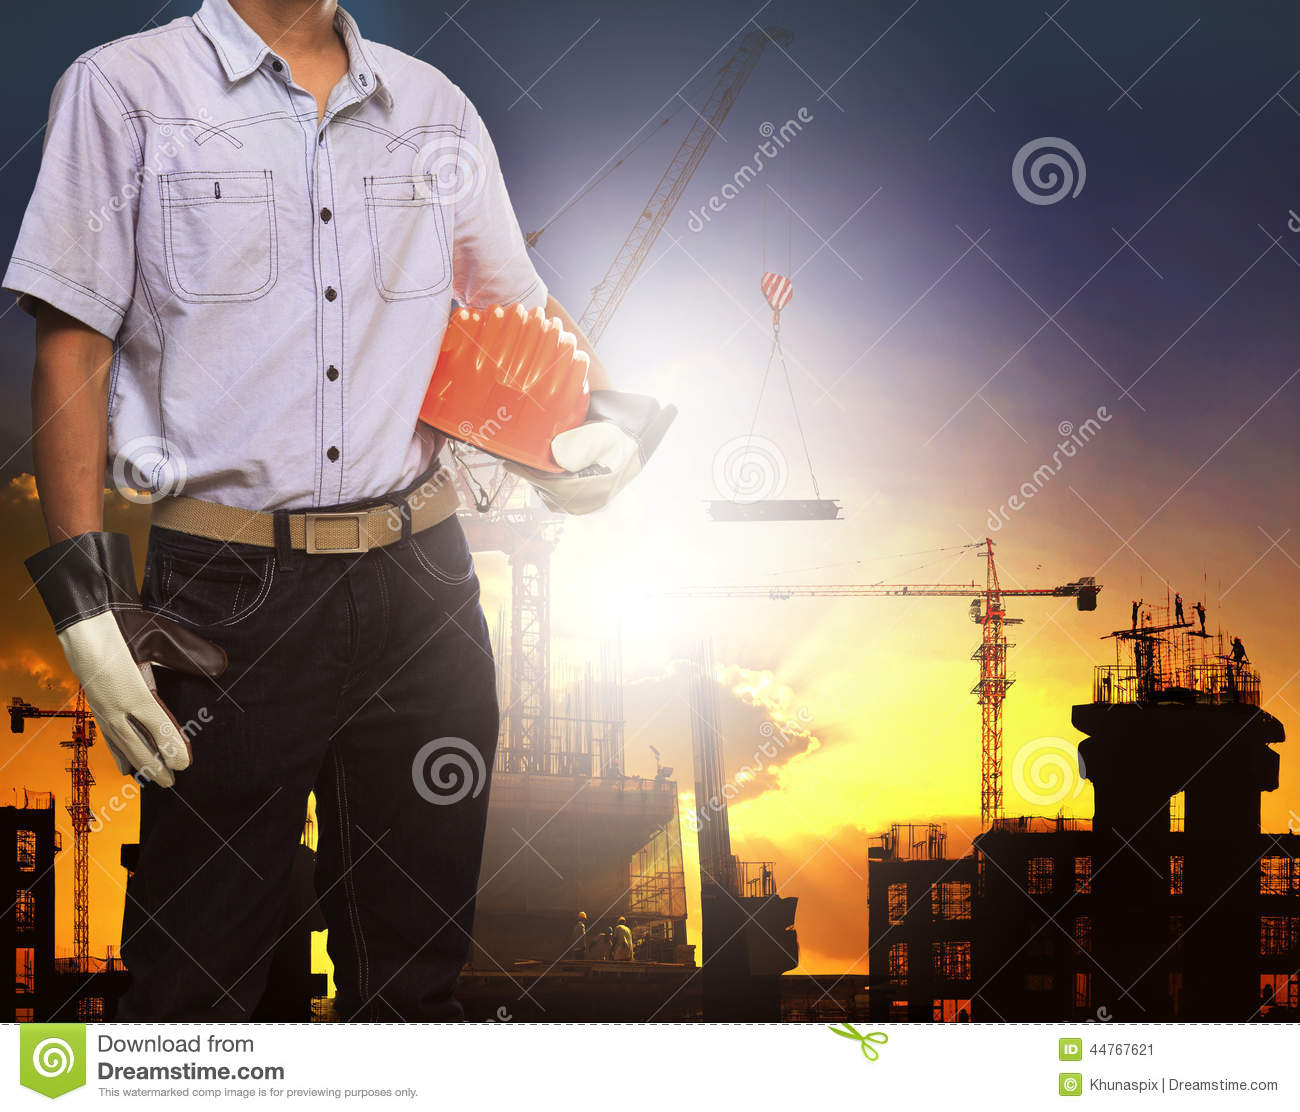 Engineer Man Working With White Safety Helmet Against